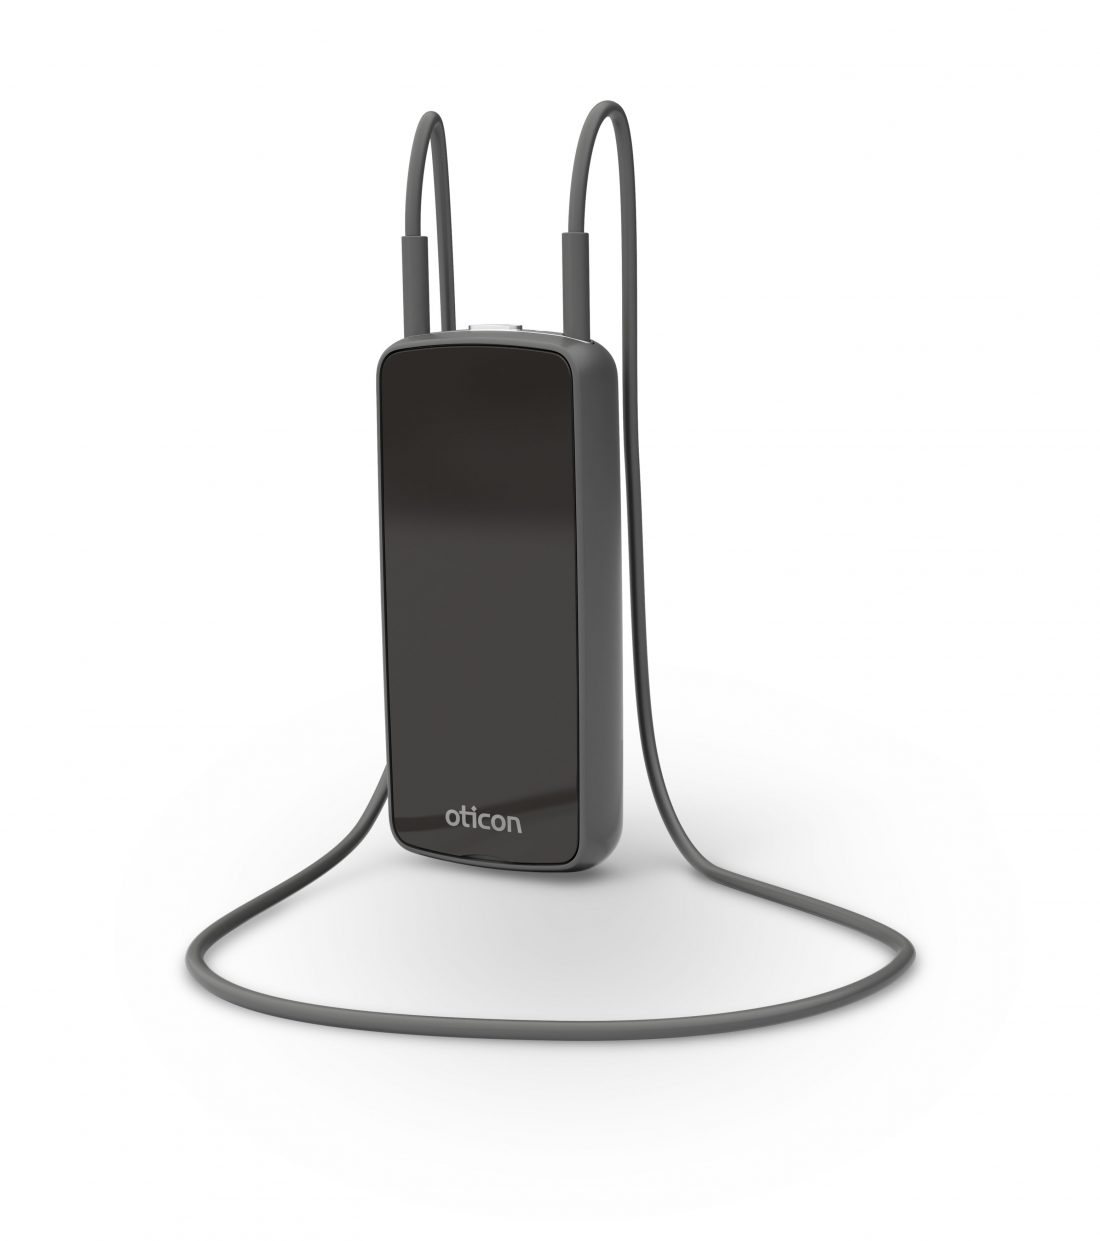 Oticon ConnectLine Streamer Pro